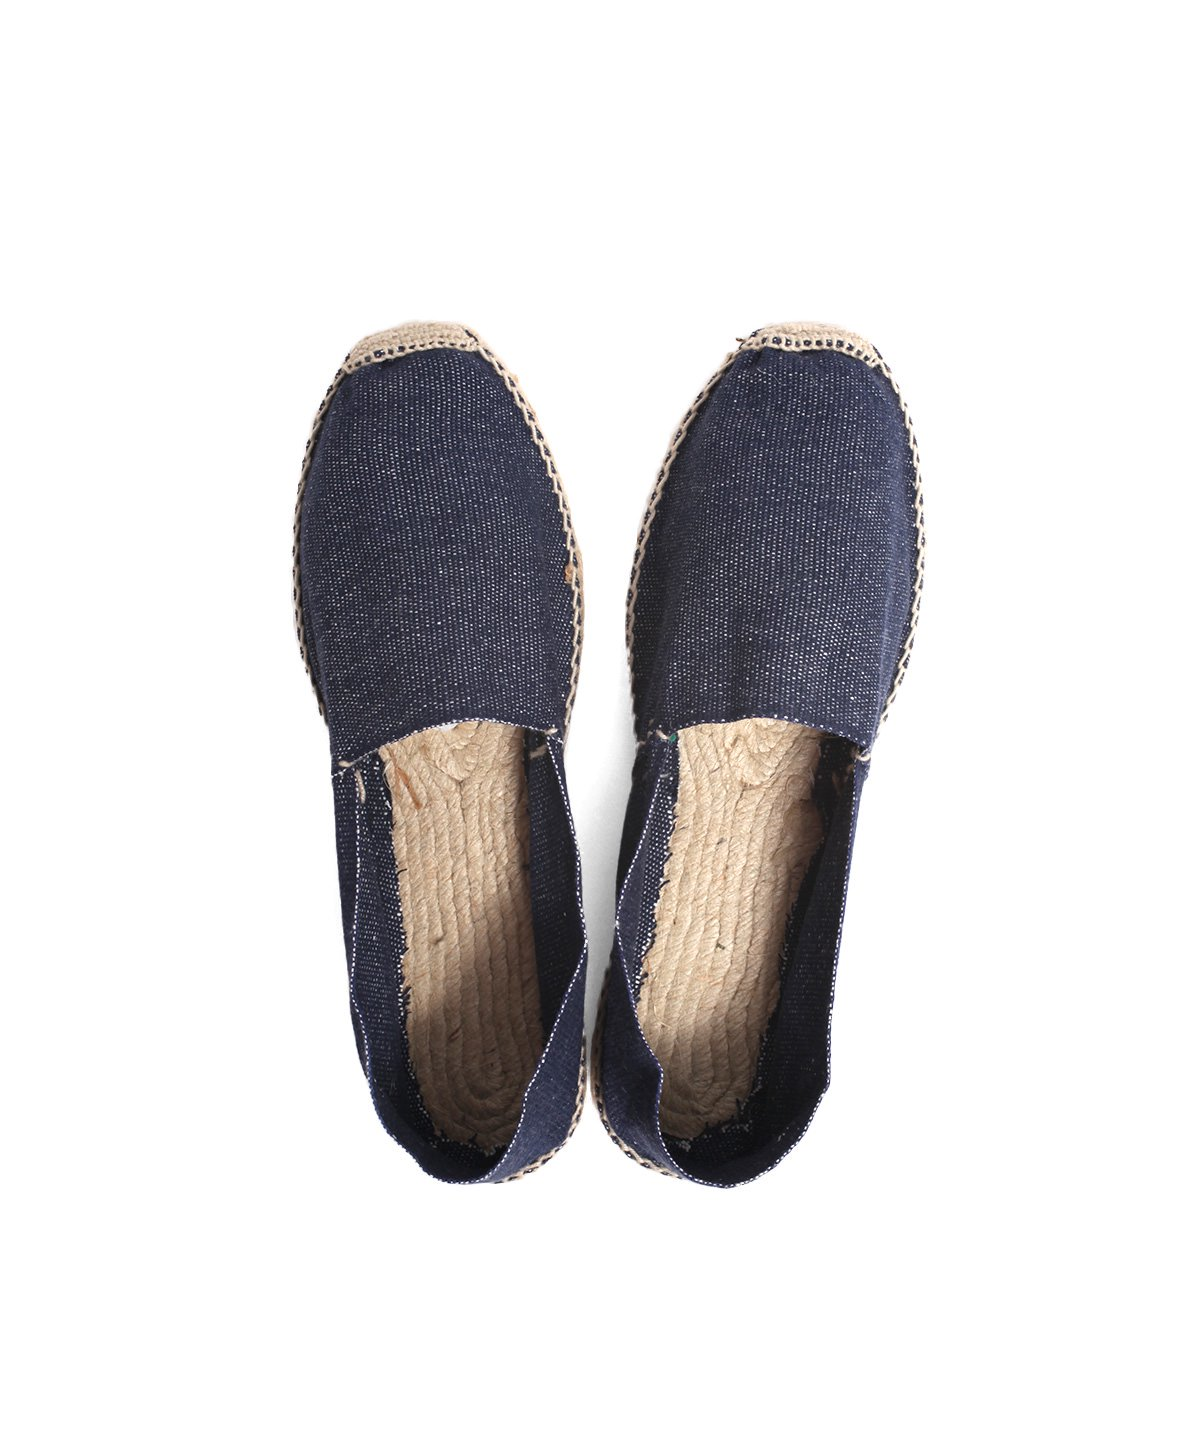 YOUNG ESPADRILLE